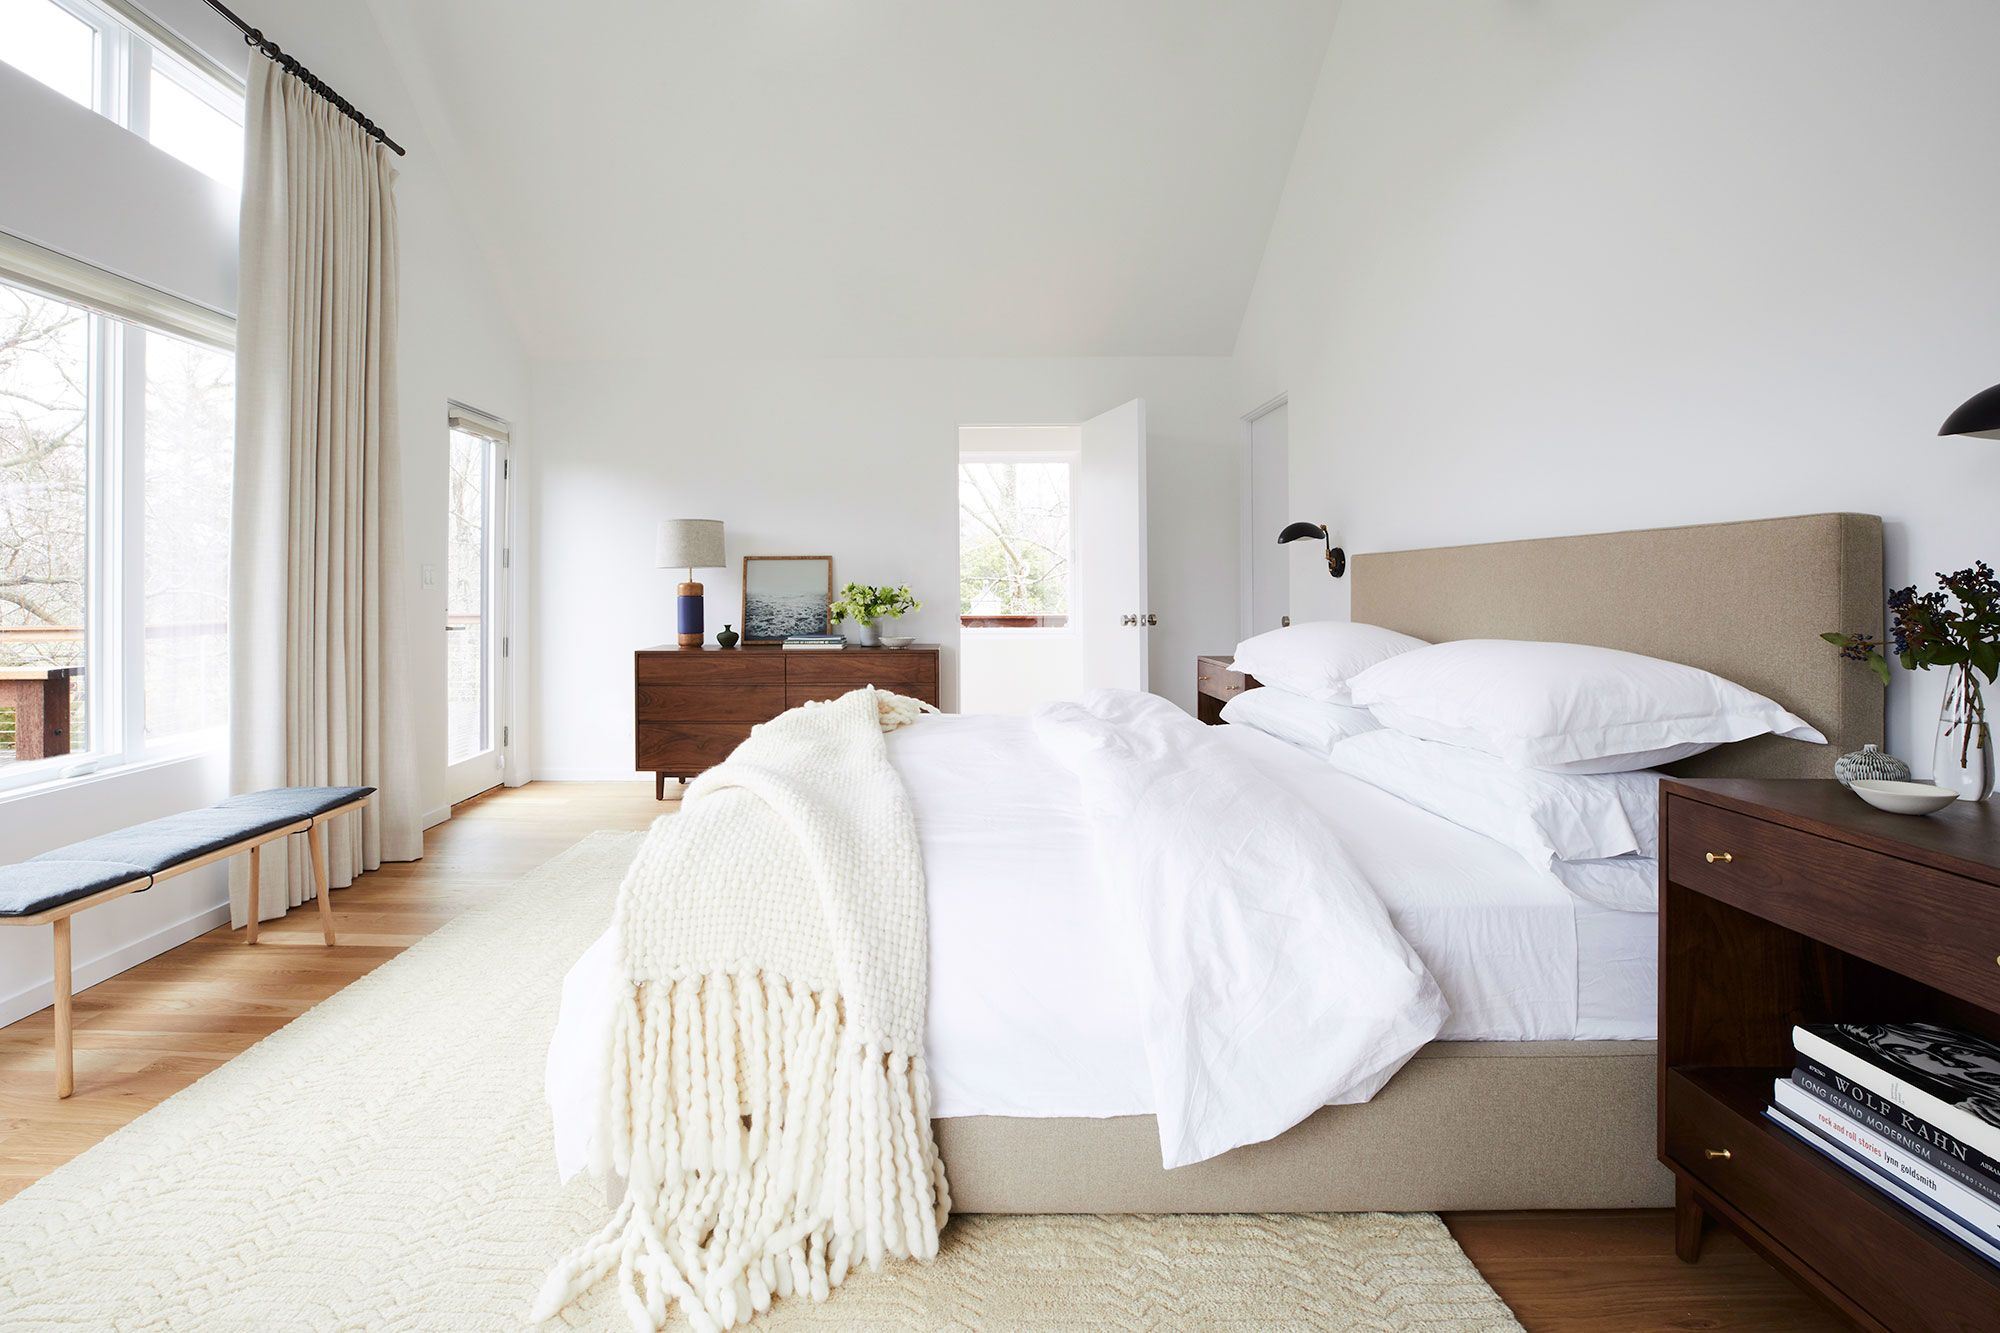 20 cozy bedroom ideas how to make your bedroom feel cozy rh housebeautiful com Making a Cozy Room how to make your bedroom feel cozy